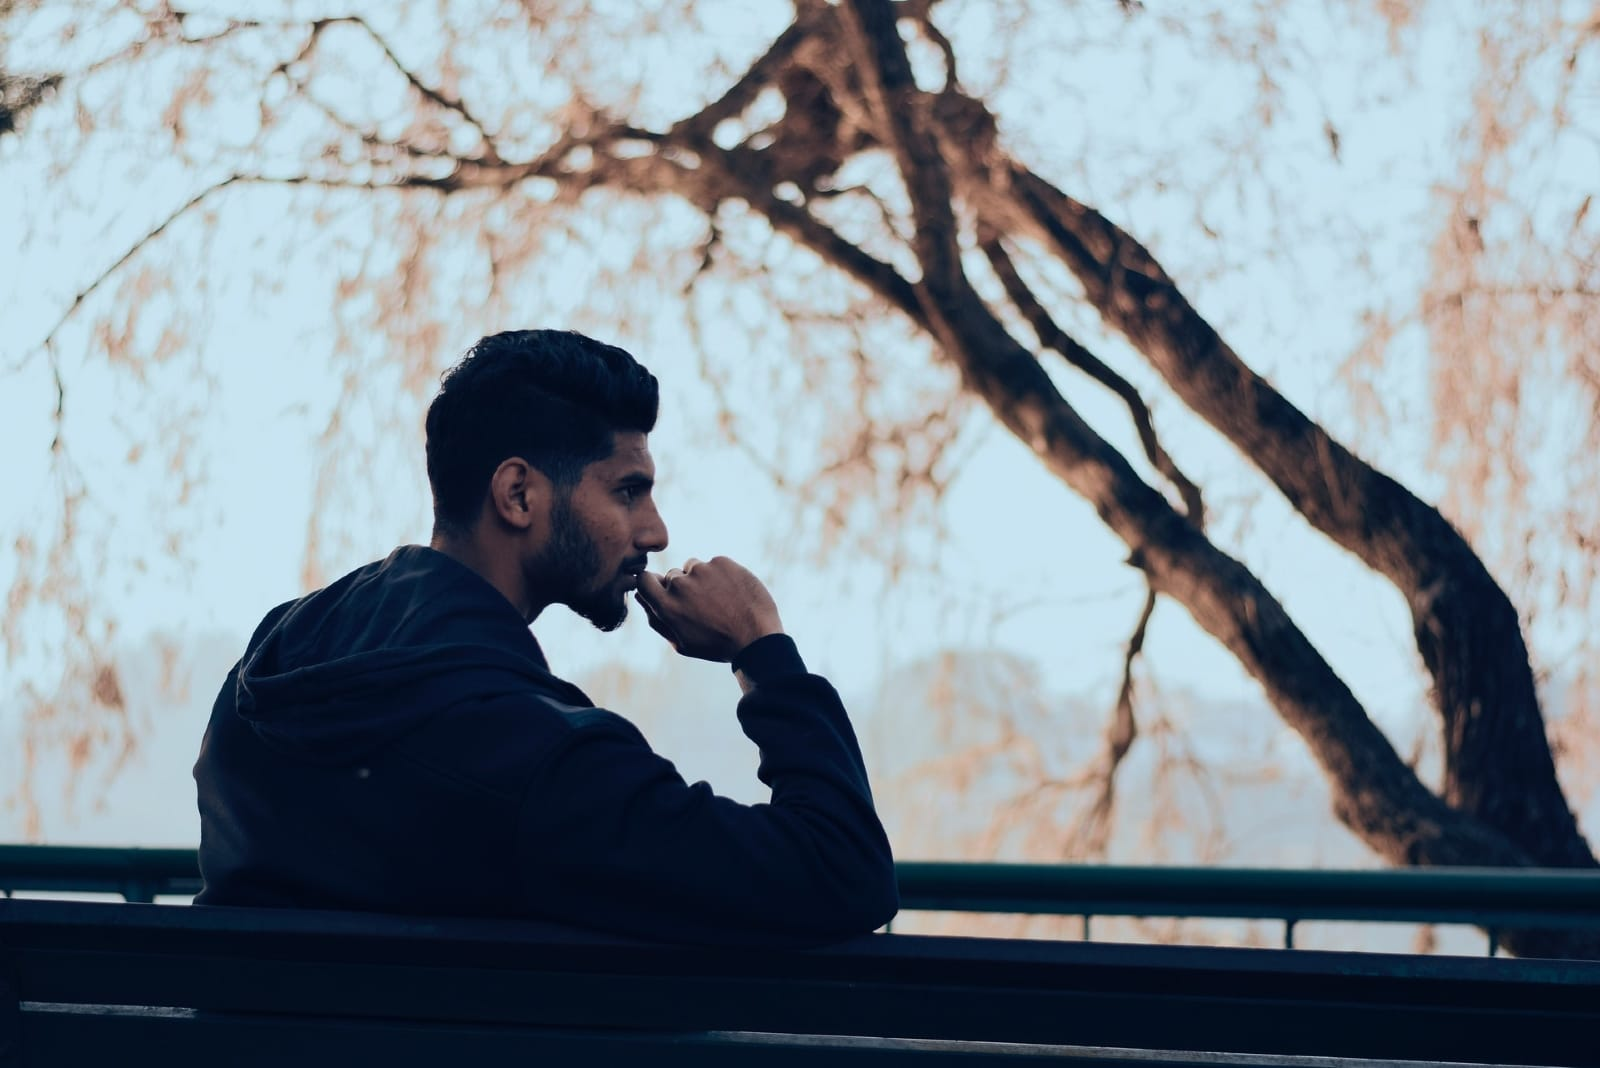 pensive man in black jacket sitting on bench